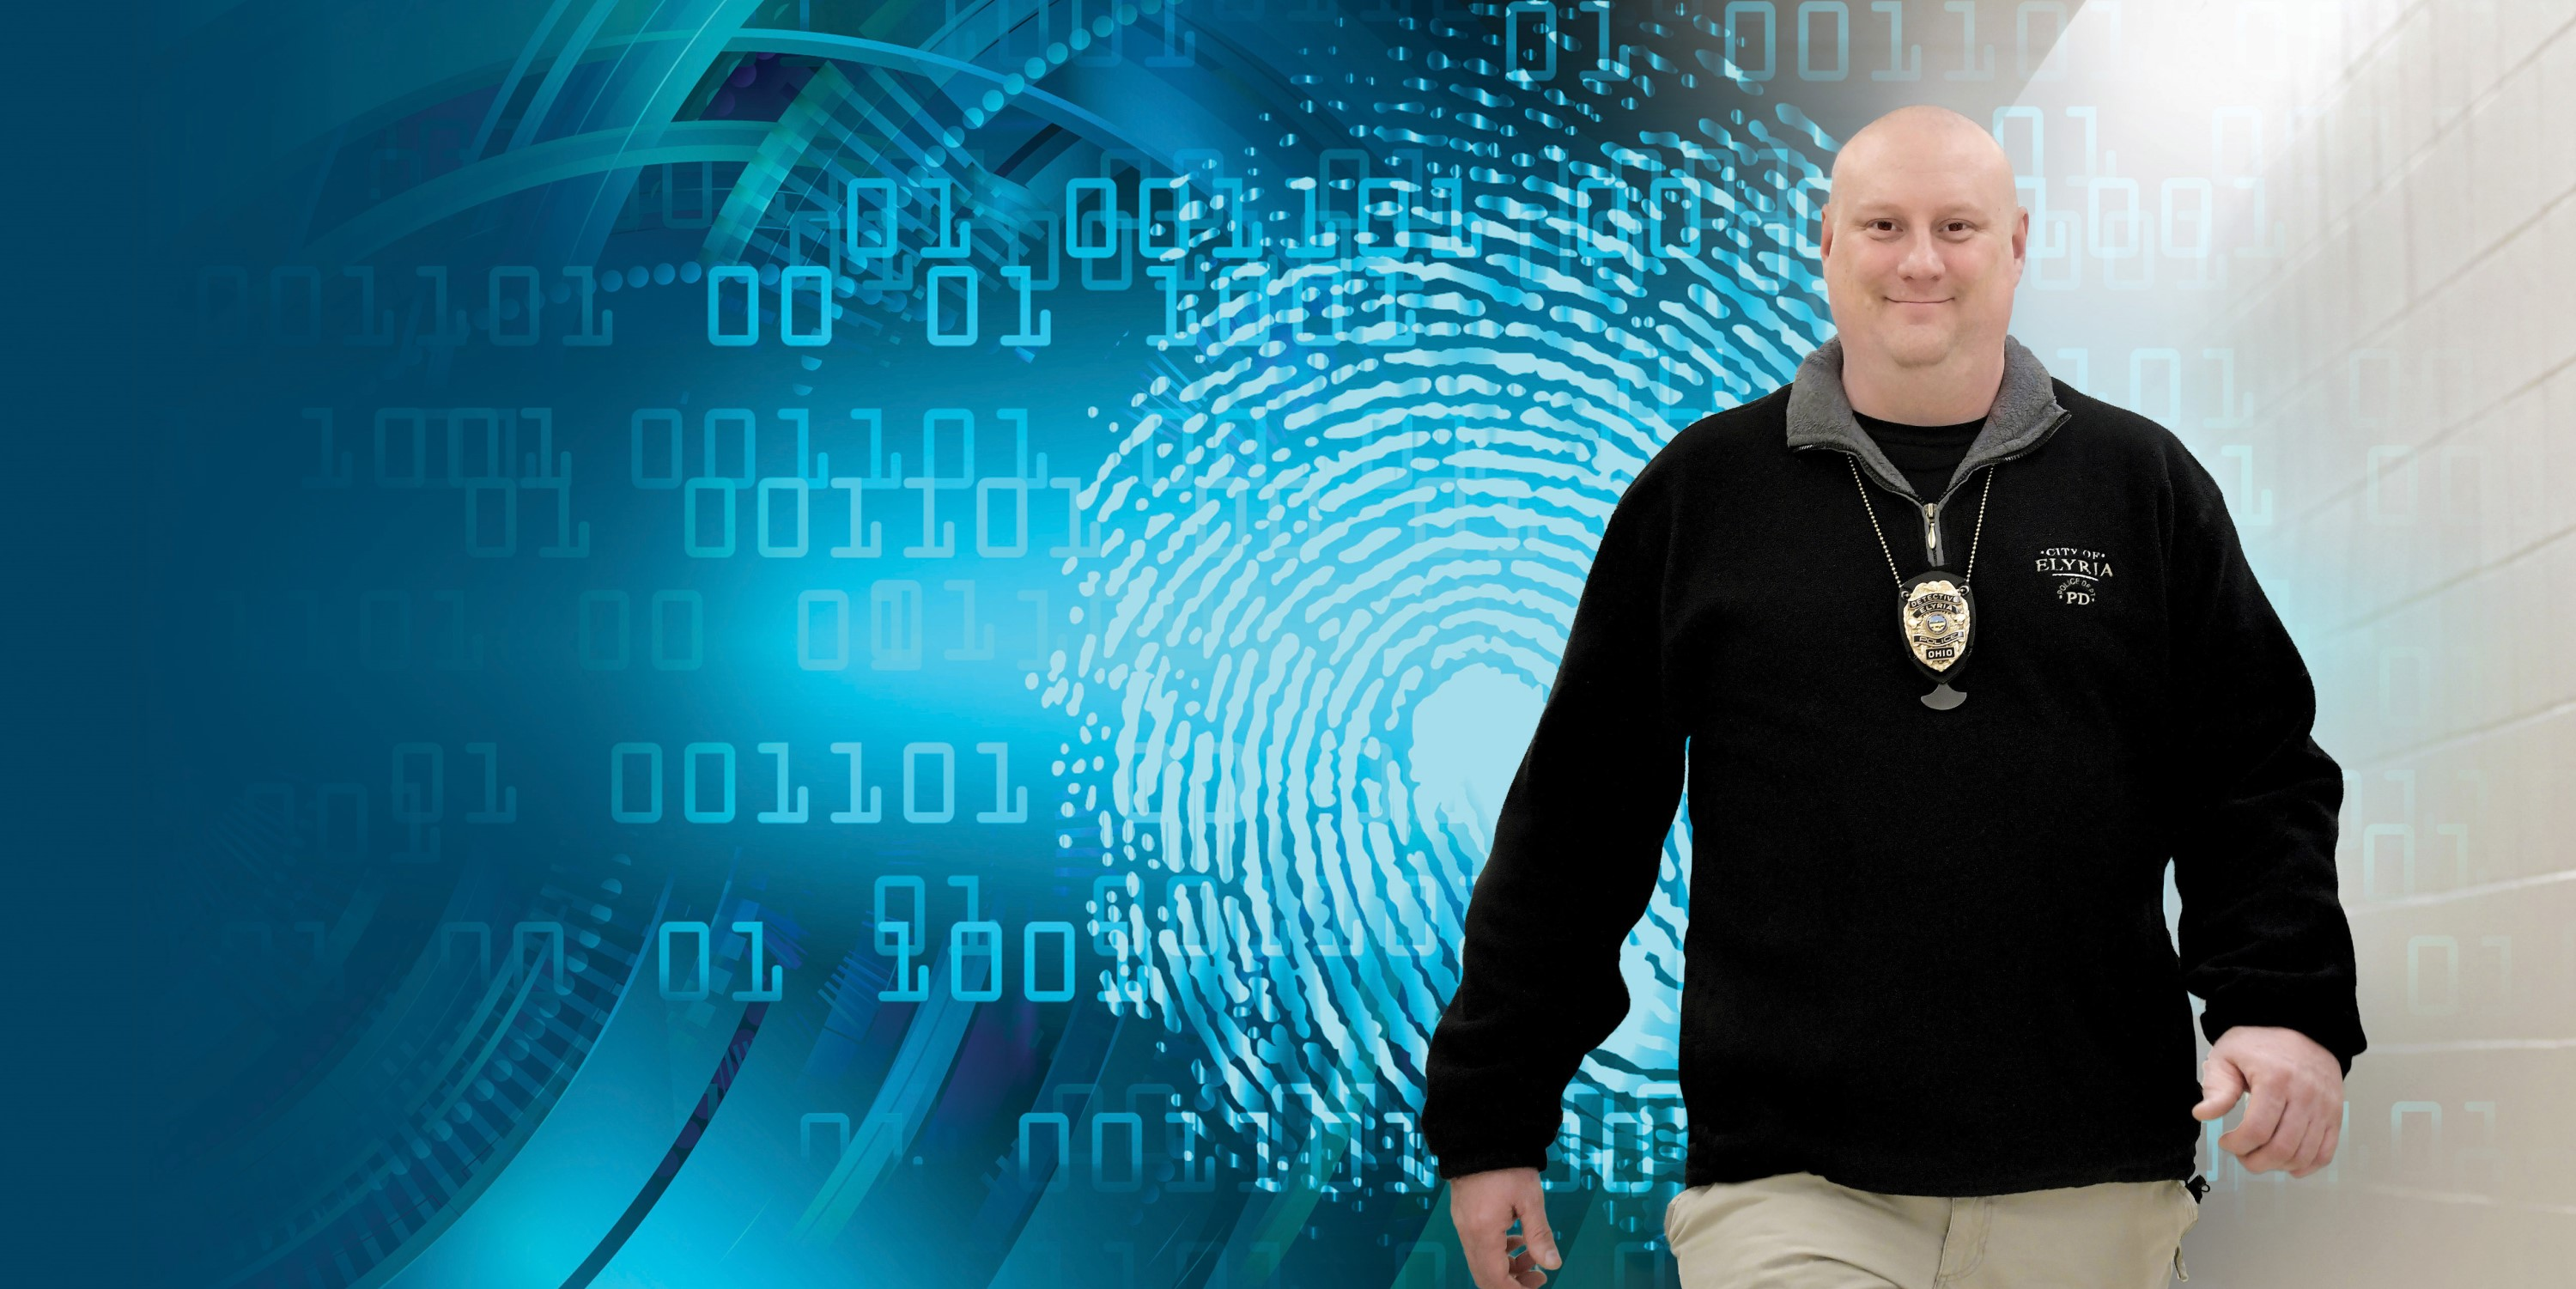 Dan Sumpter standing in front of a graphic image with technology and a fingerprint.